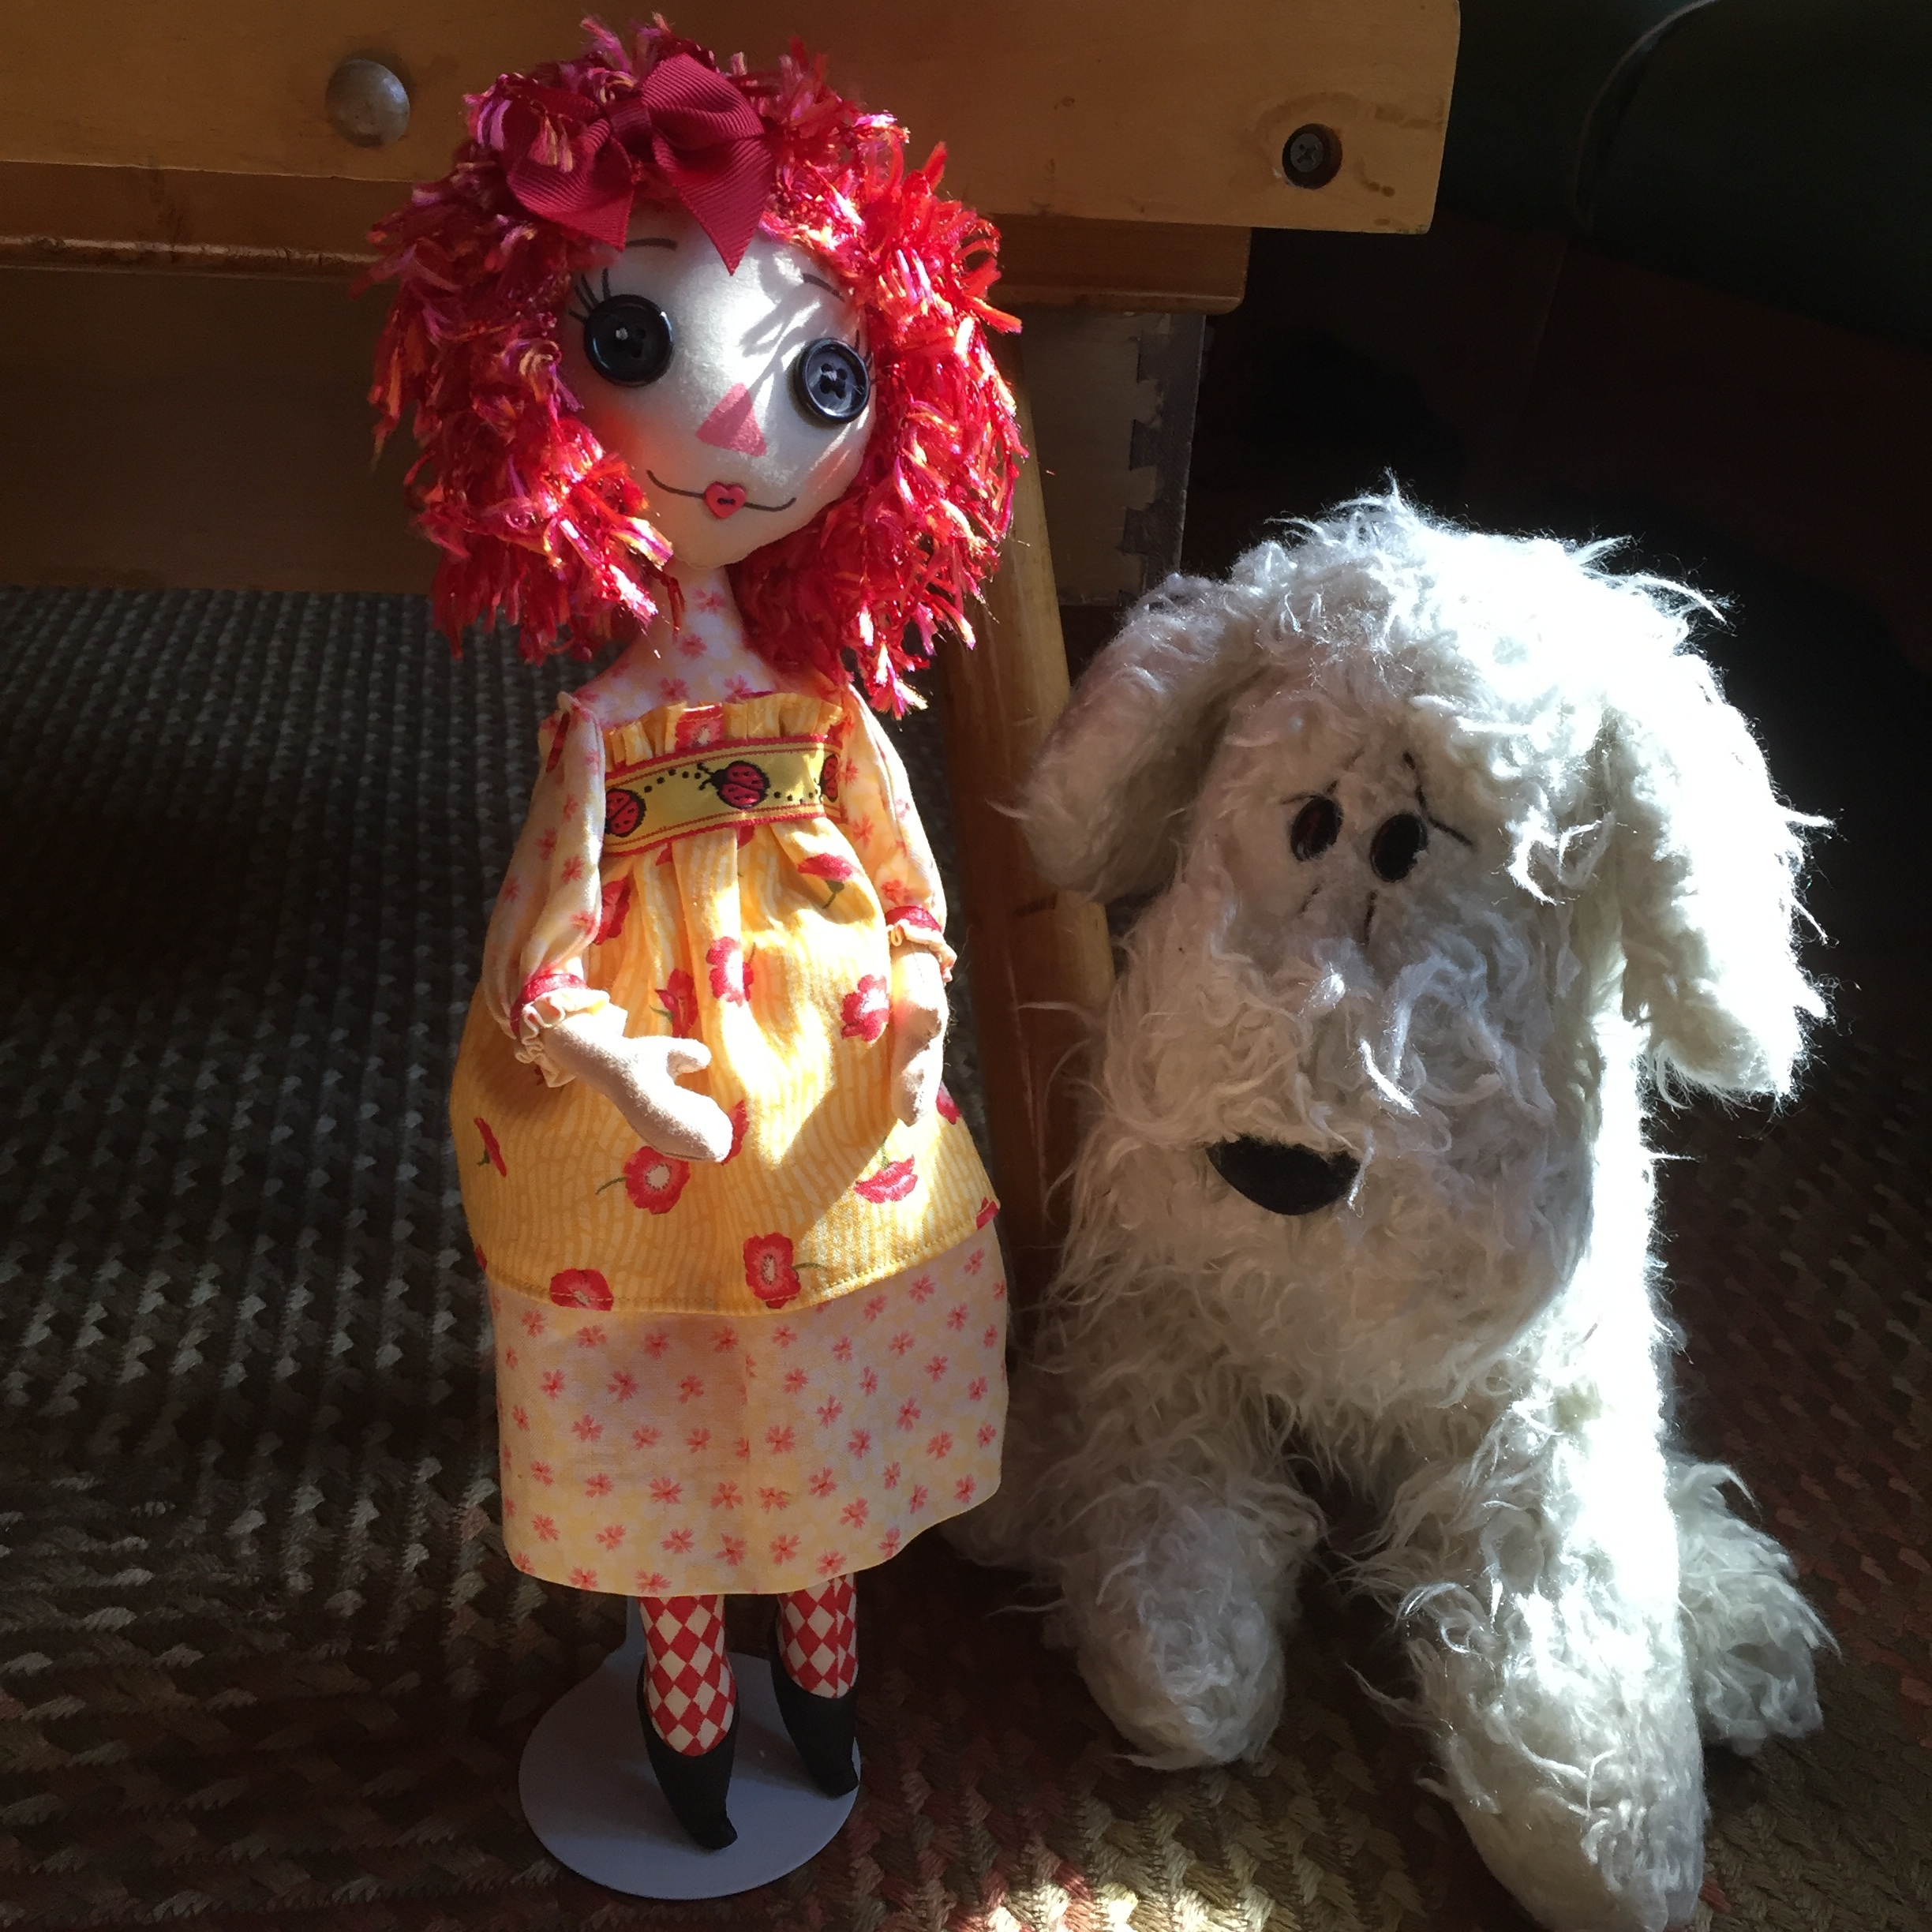 By Beth Duncan (face from the  Sweet rag dolls  collection)